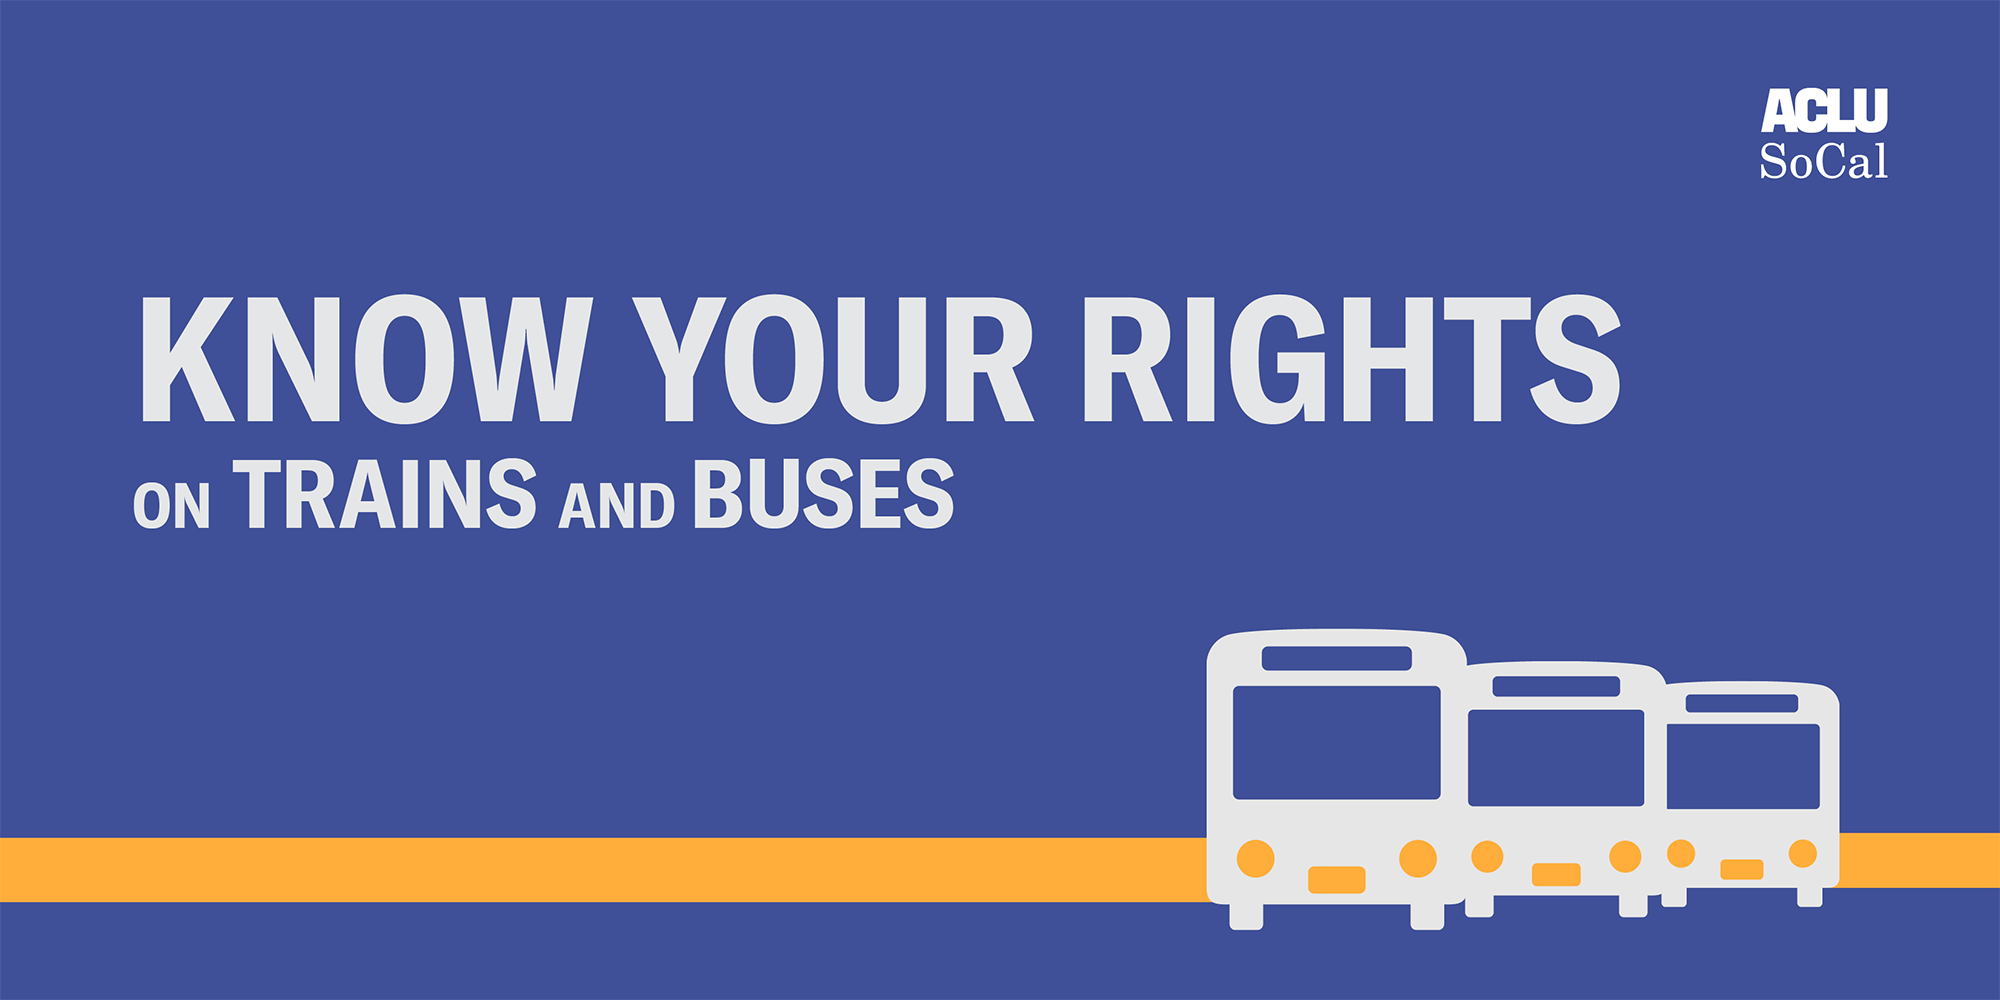 Know your rights on trains and buses